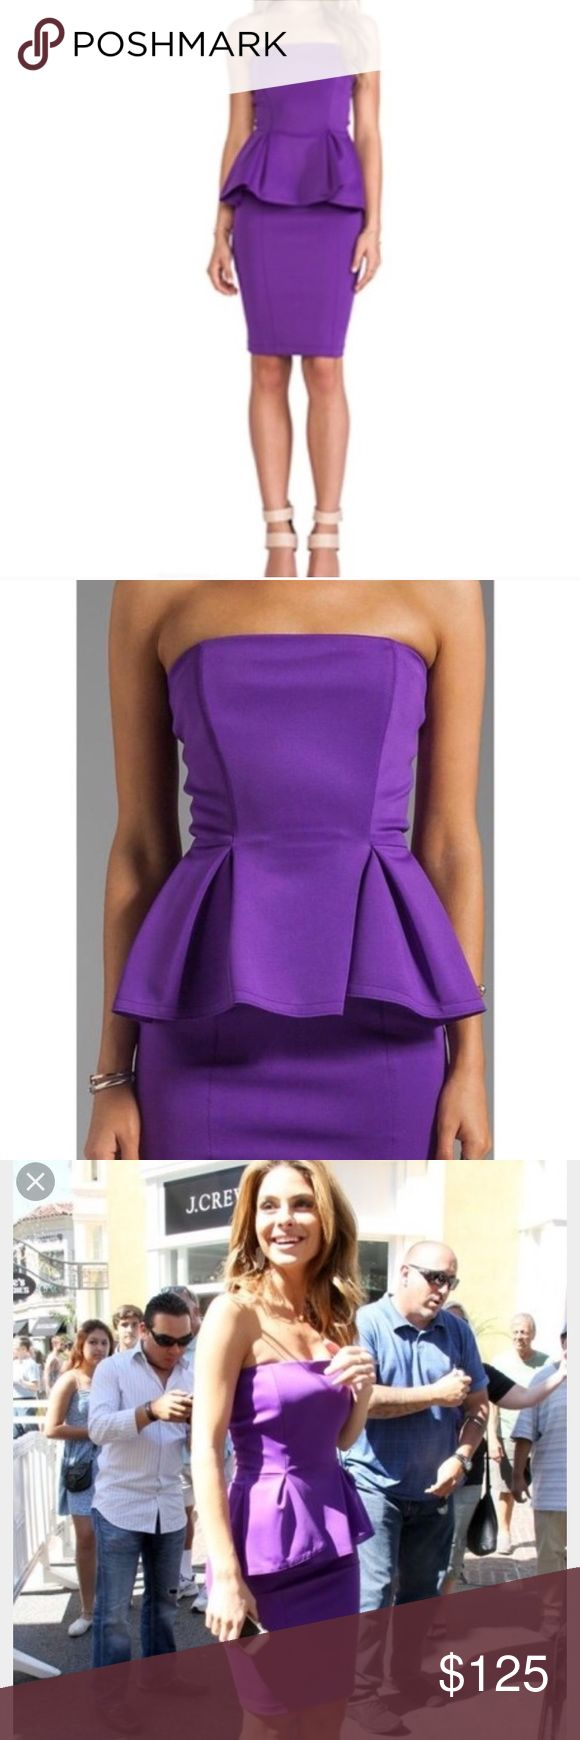 Torn by Ronny Kobo Peplum Scuba Dress- NWT, Med Super sexy color. The dress hugs all the right curves. Perfect date night dress or weekend with the girls this spring/summer. Back is full zip. Torn by Ronny Kobo Dresses Strapless